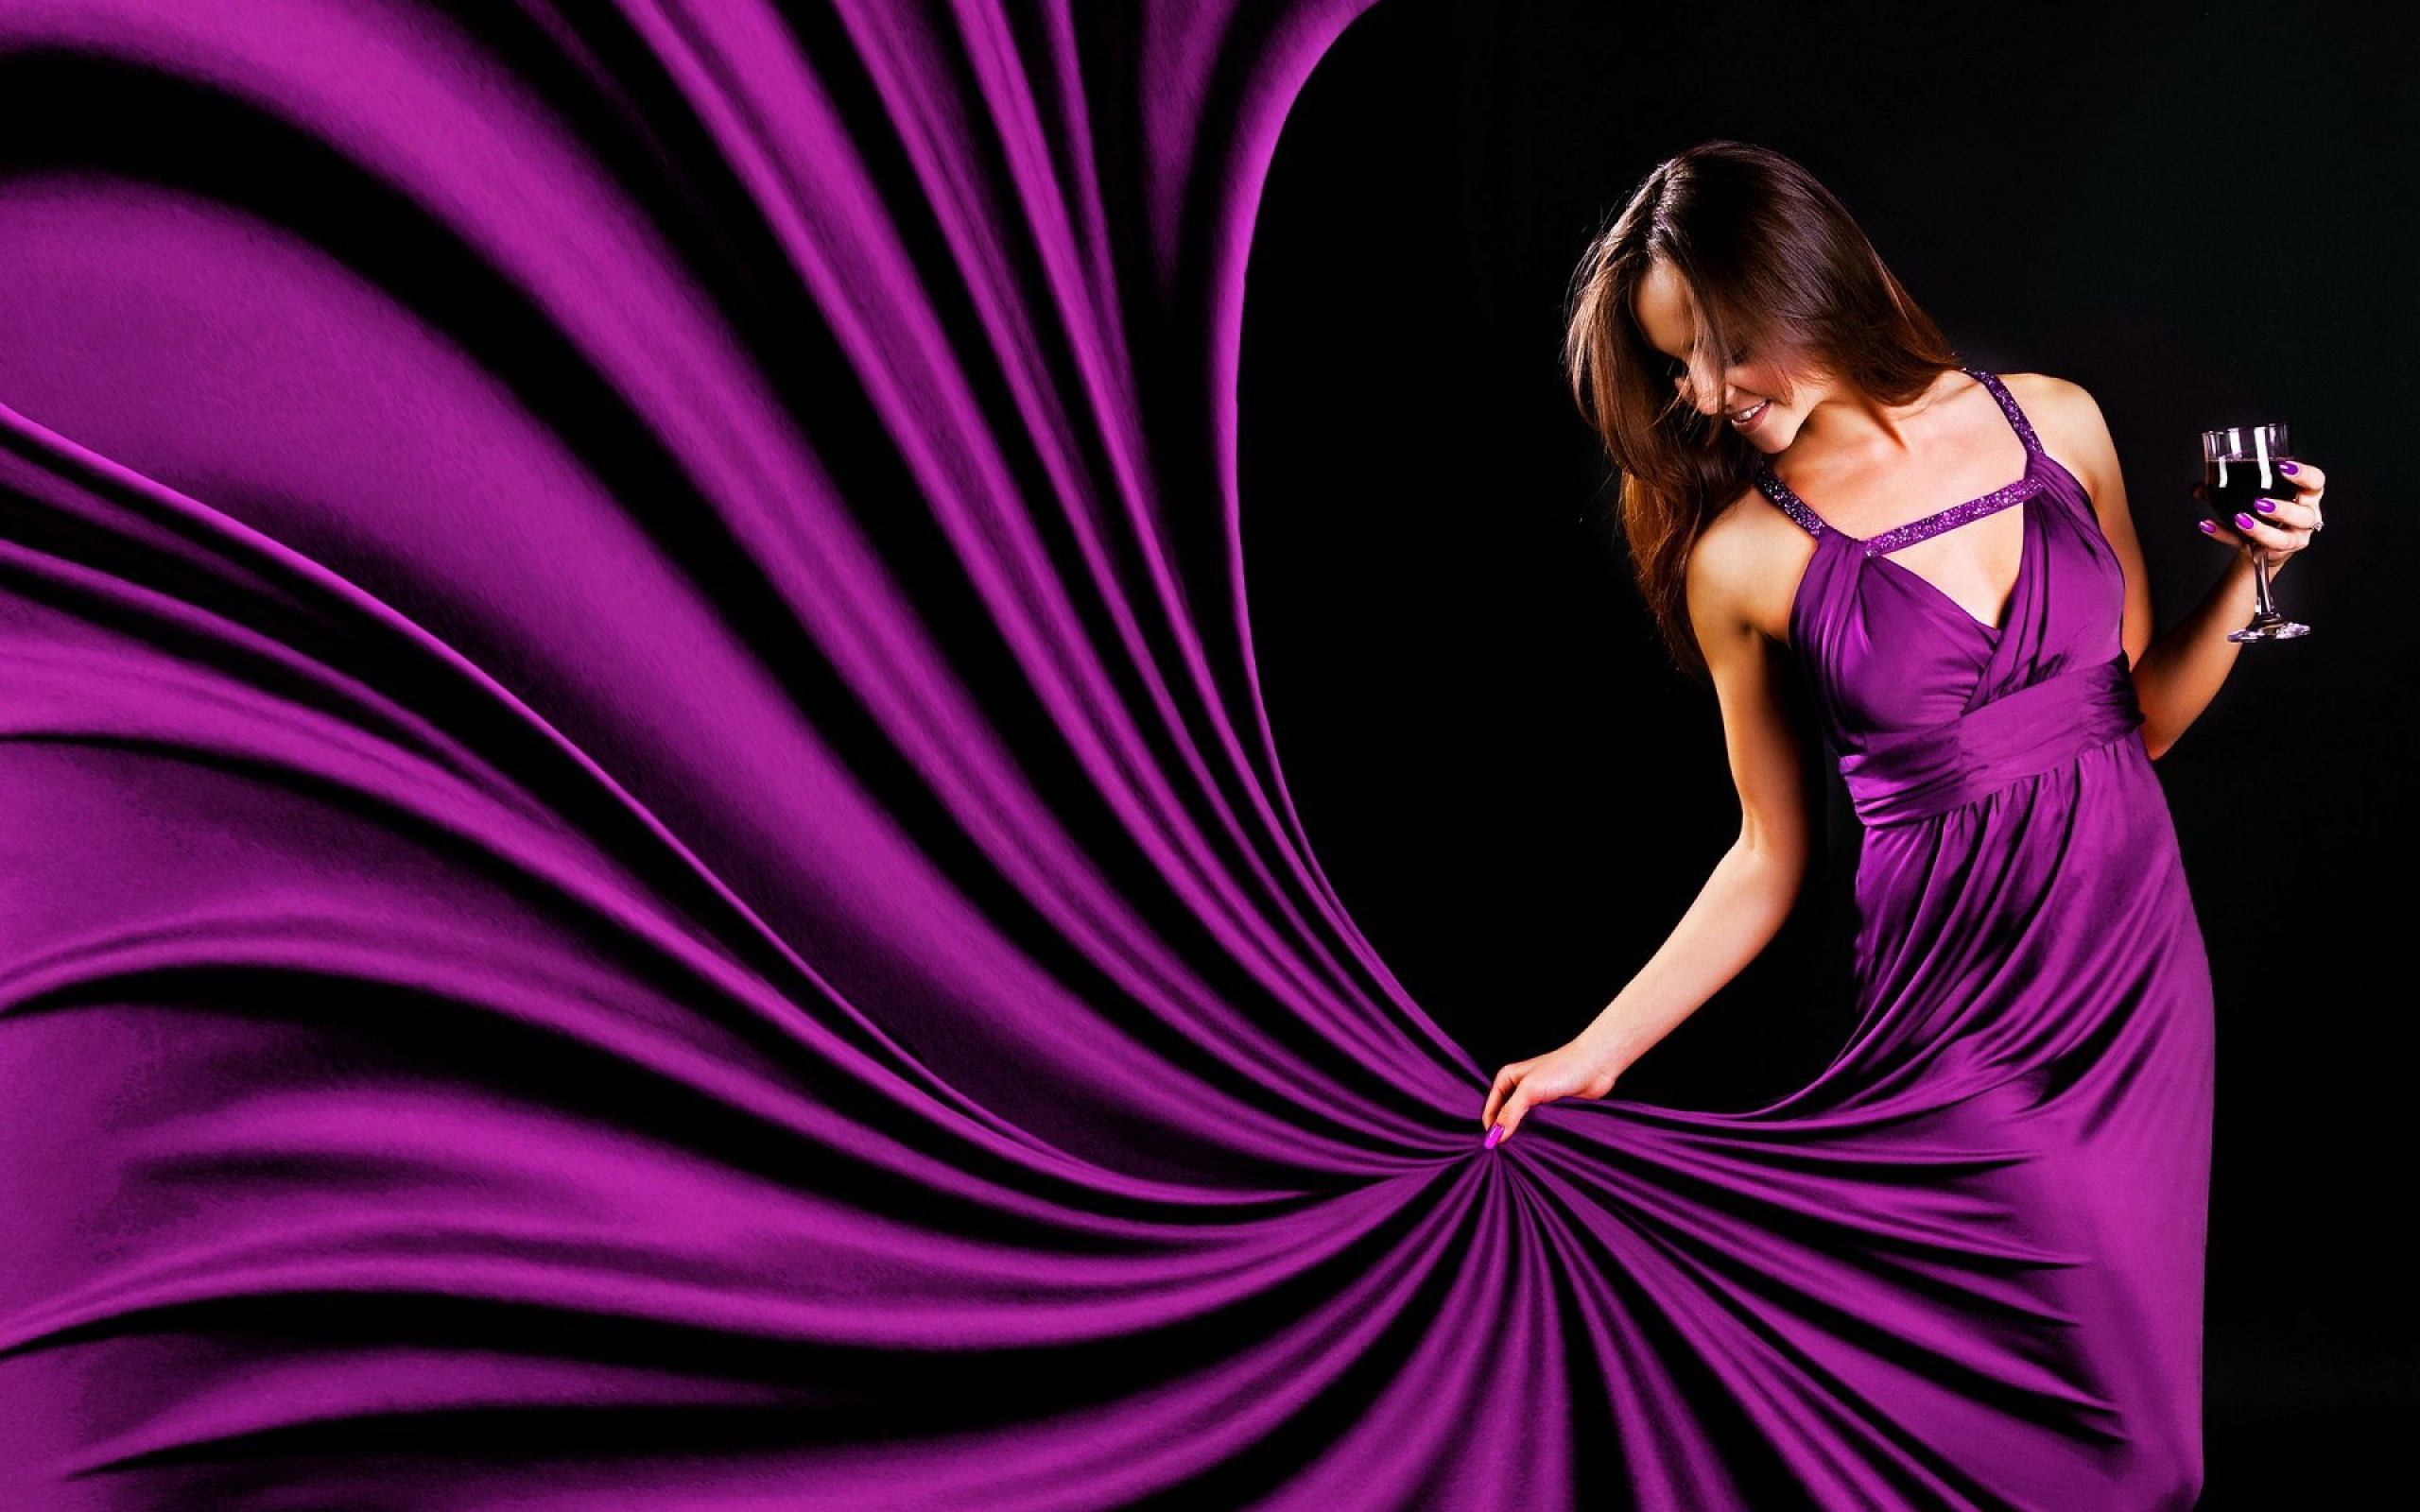 Dress Background